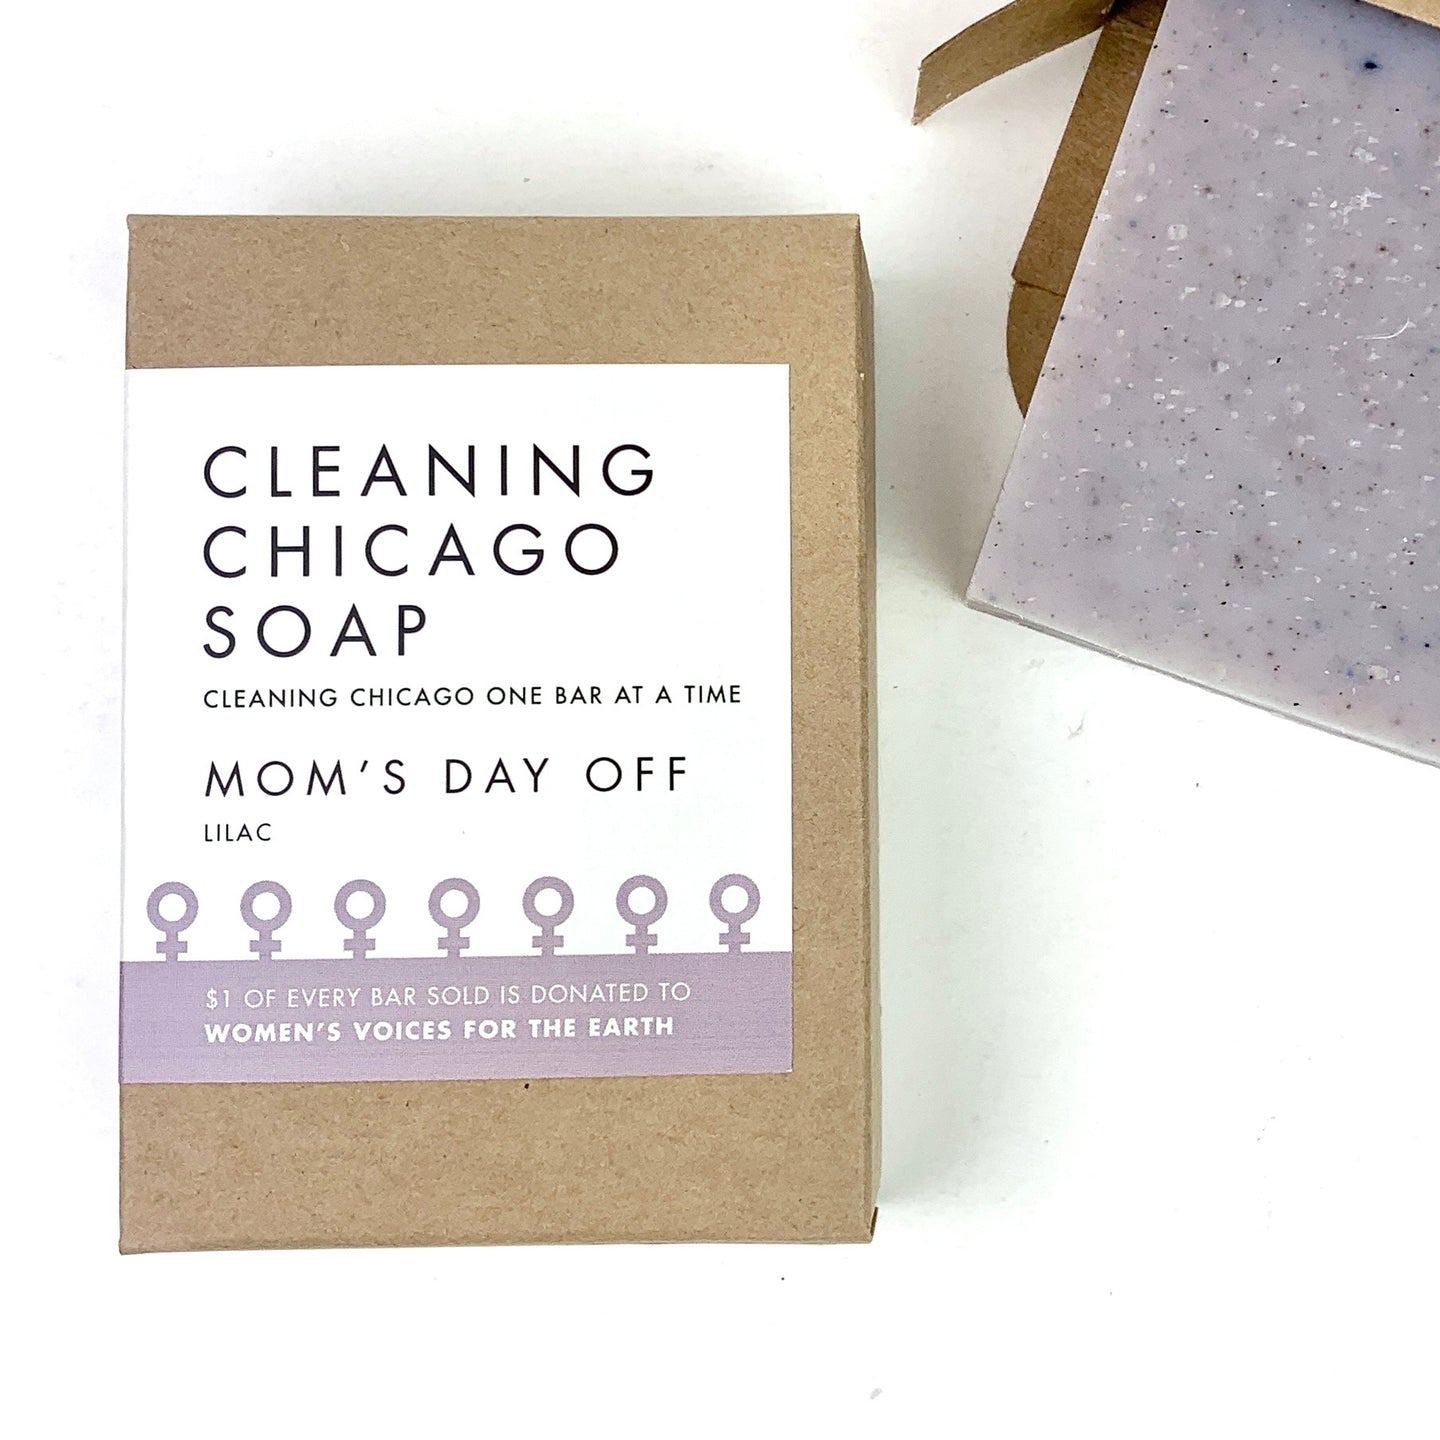 Cleaning Chicago Mom's Day Off Lilac Soap